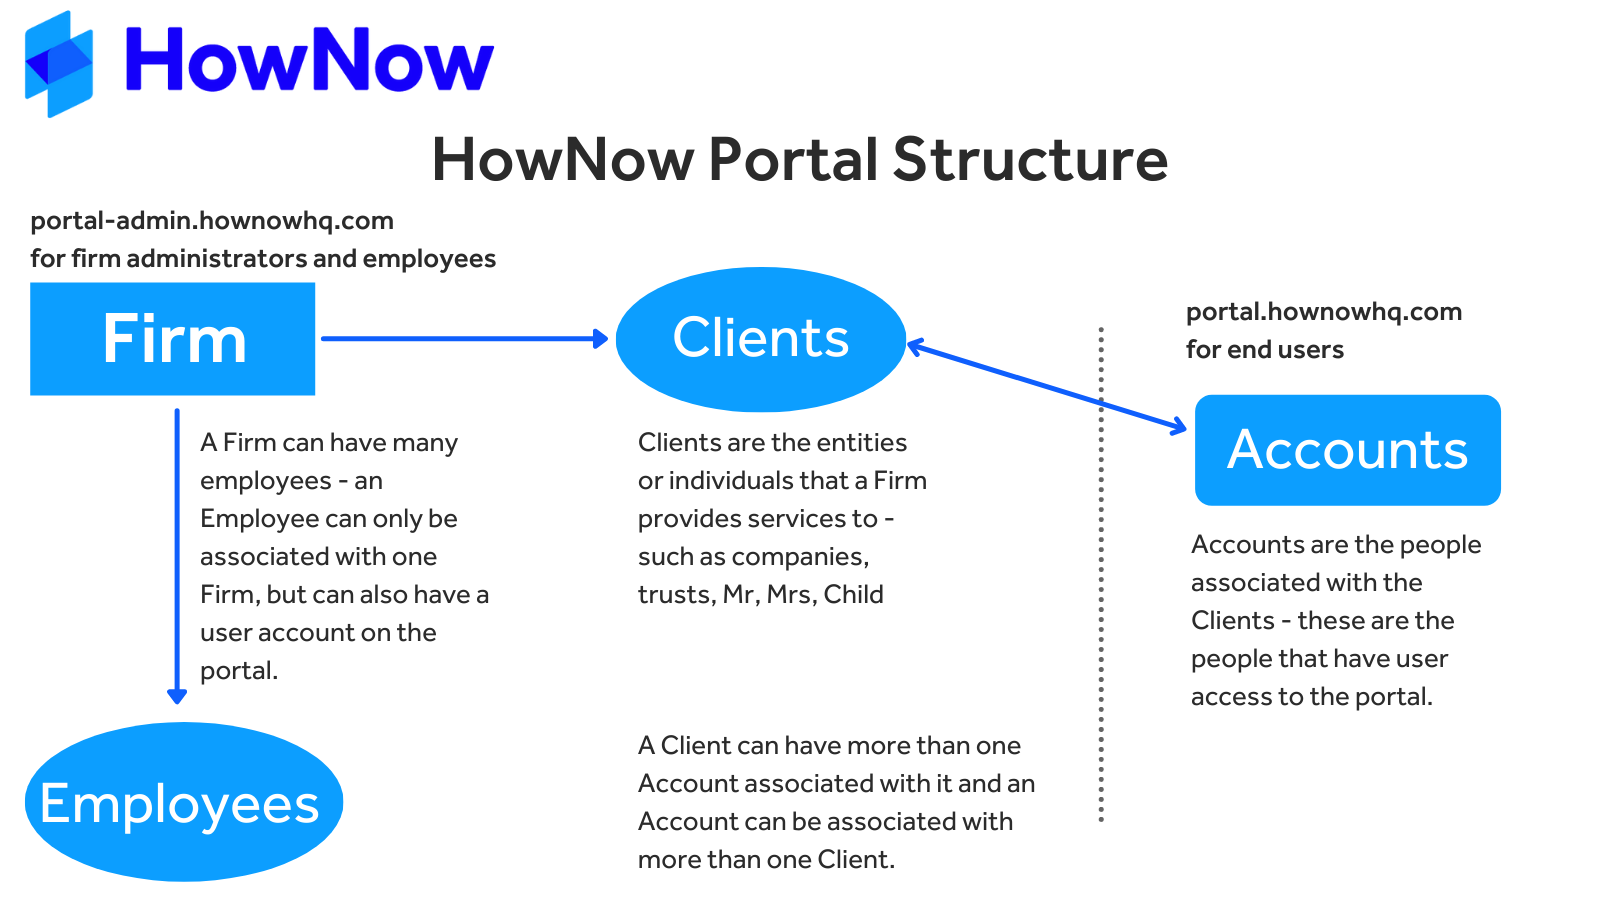 HowNow Portal Structure & Relationships